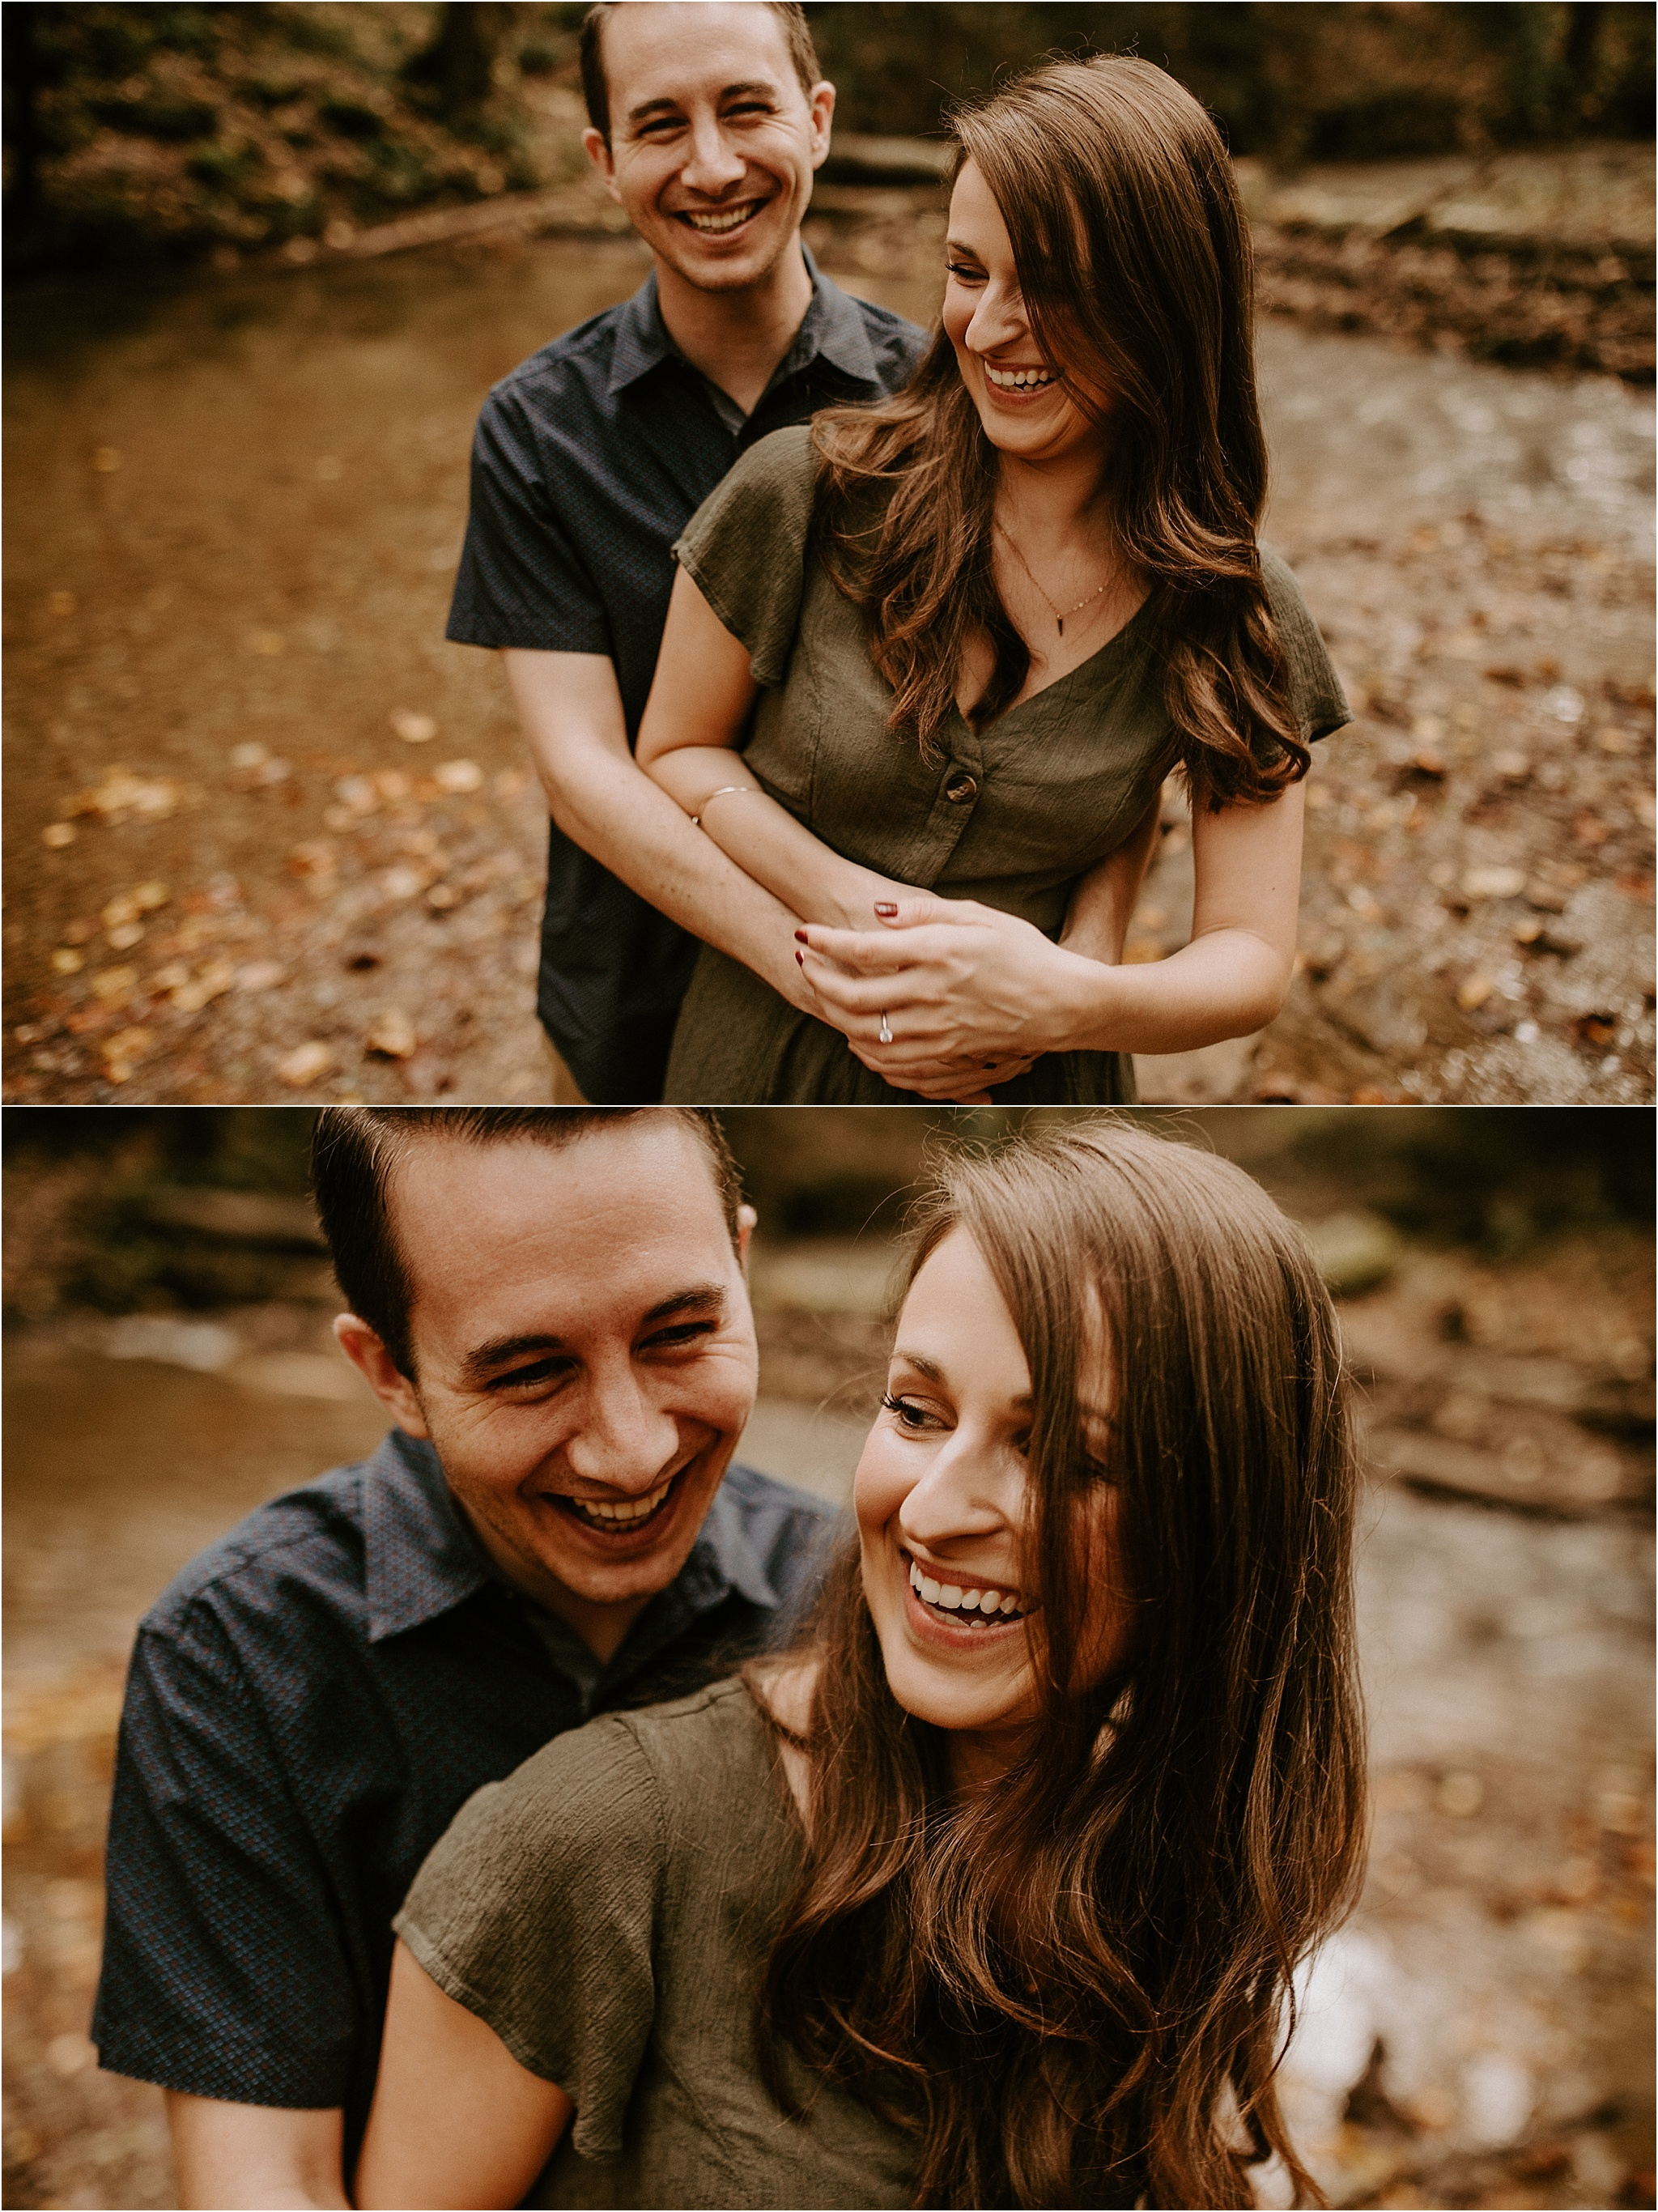 Sarah_Brookhart_Lancaster_PA_Engagement_Photographer_0004.jpg